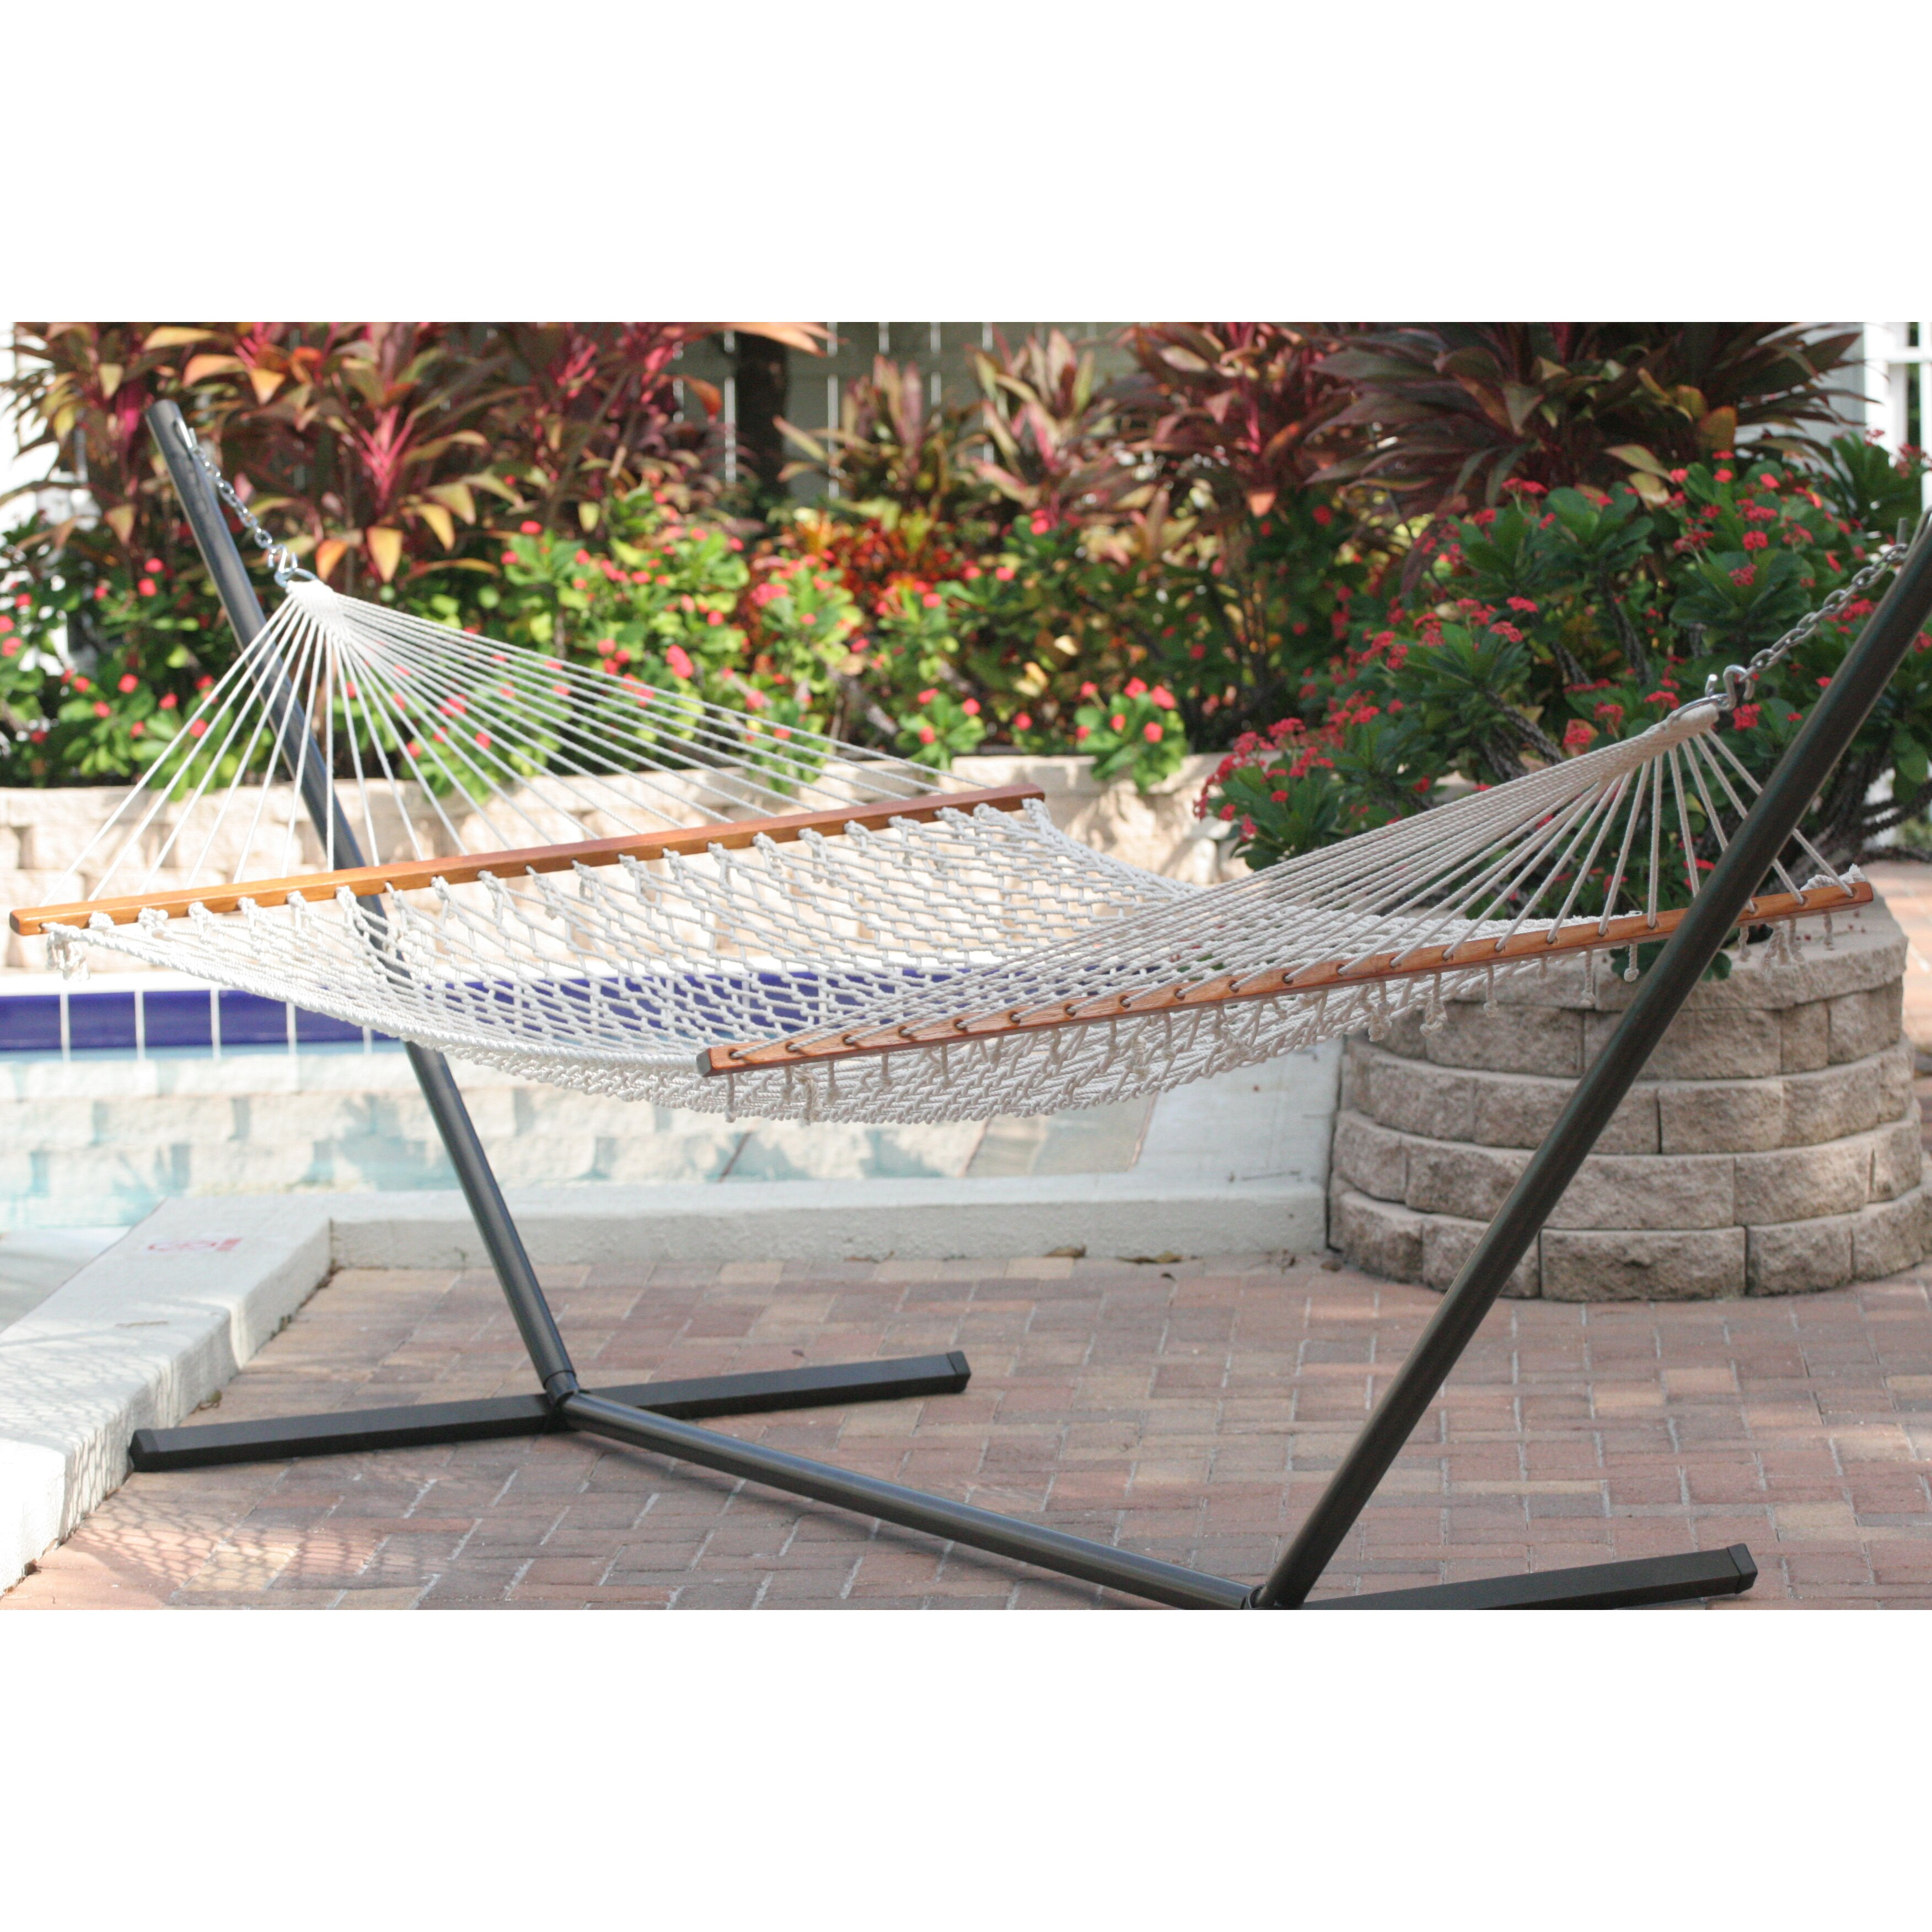 Smart Living Cancun Premium Two Person Rope Hammock ...